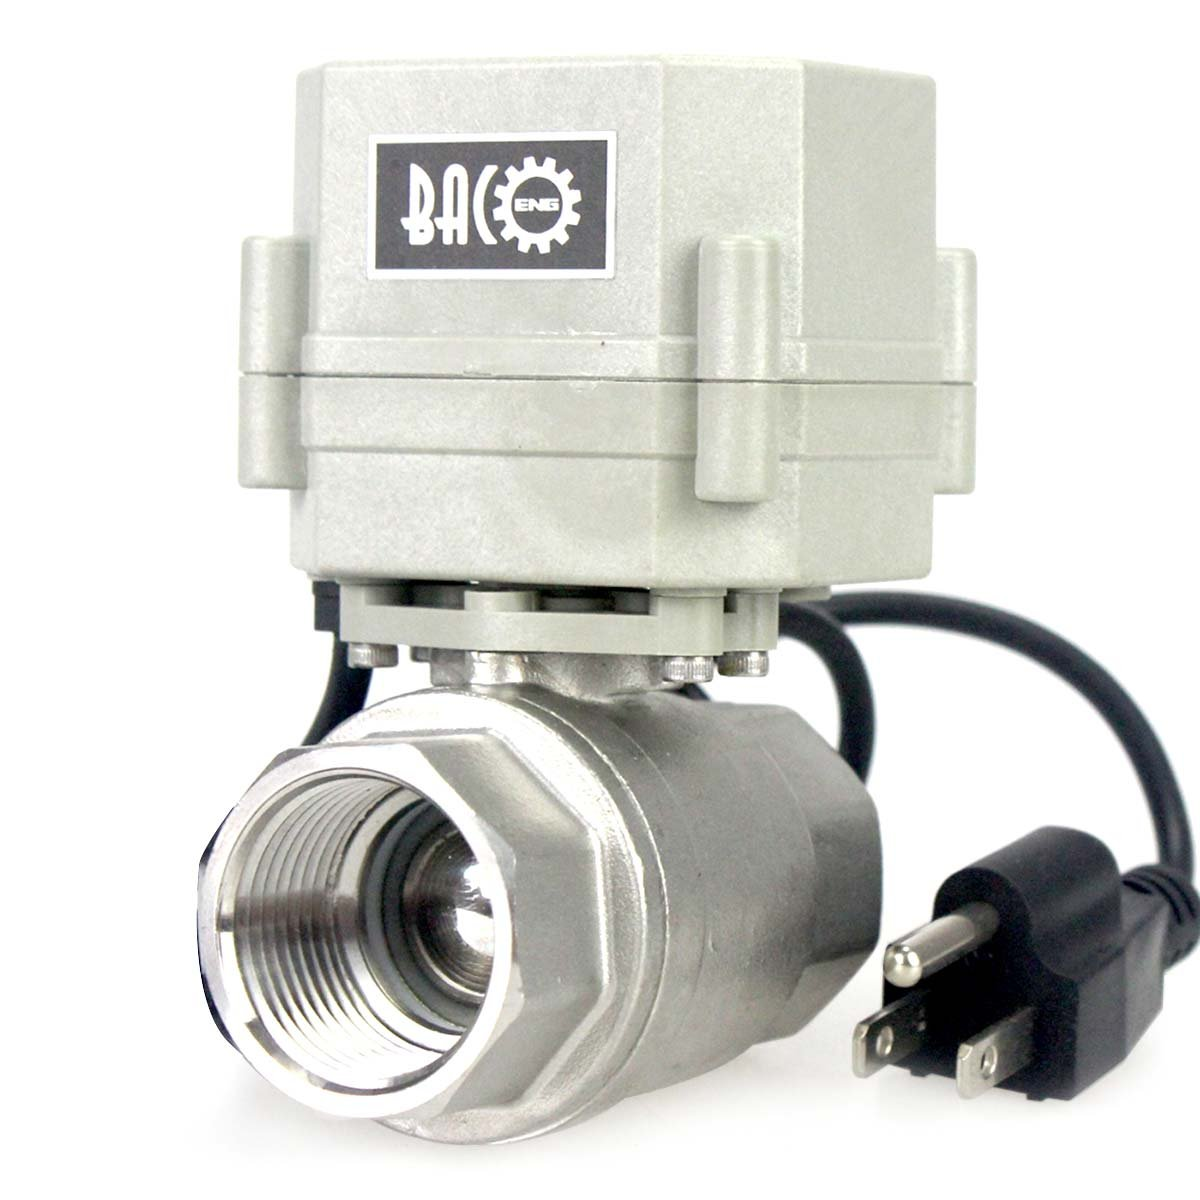 BACOENG 1'' DN25 110VAC Stainless Steel Motorized Ball Valve 2 Way/Zone Valve With US Plug(NC CR202 2 Wires Control Electrical Ball Valve)